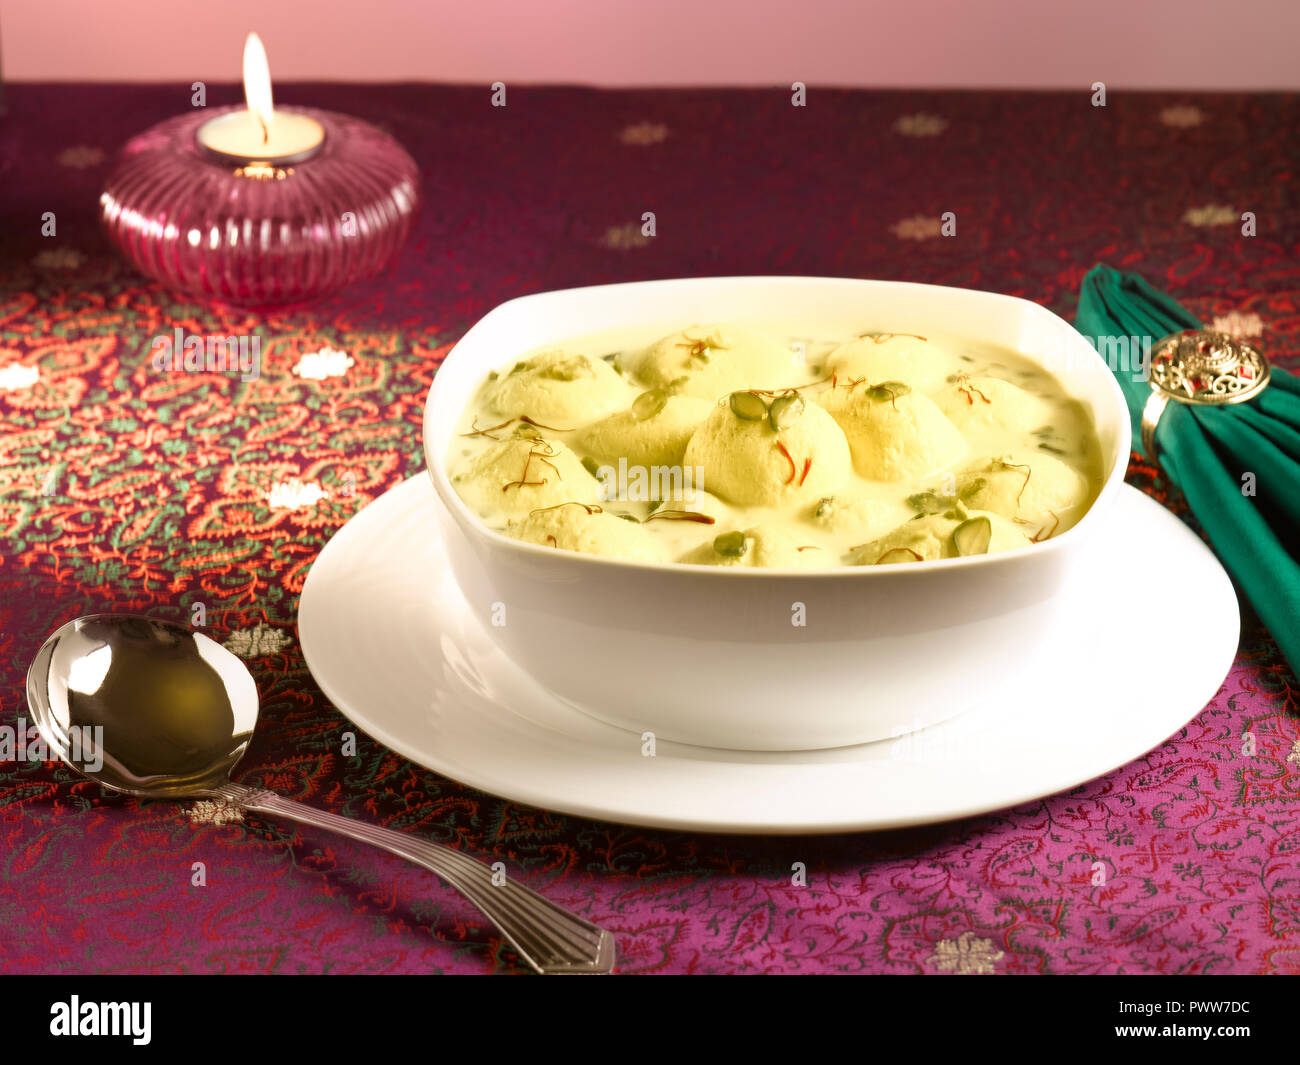 RASMALAI, AN INDIAN DESSERT MADE FROM COTTAGE CHEESE SOAKED IN SWEET SAFFRON MILK AND GARNISHED WITH PISTACHIO - Stock Image